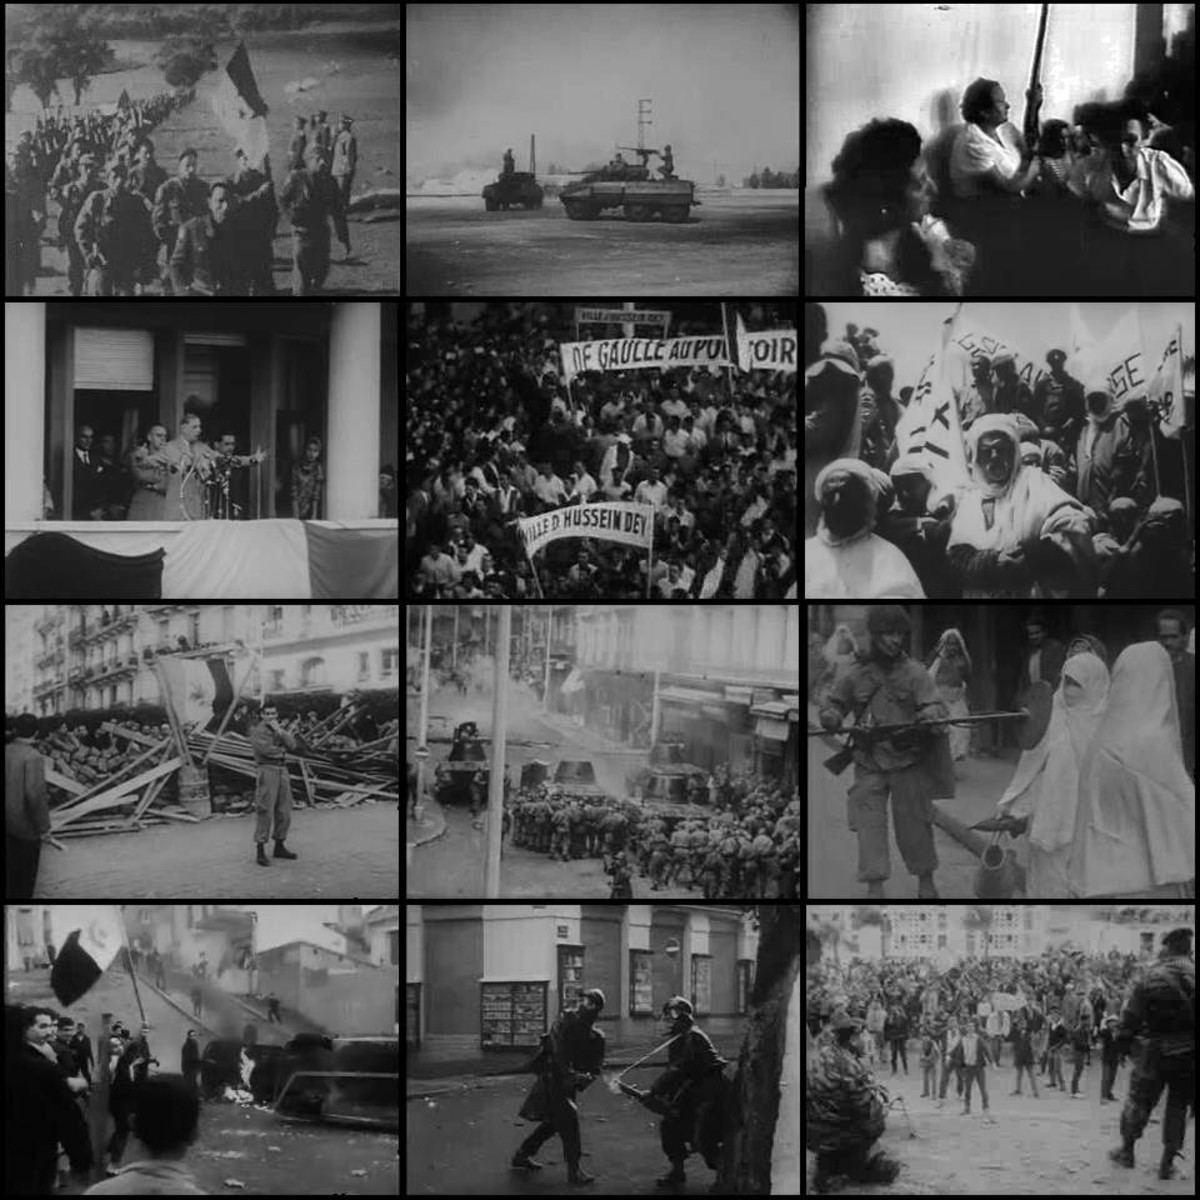 Photo collage about Algerian War